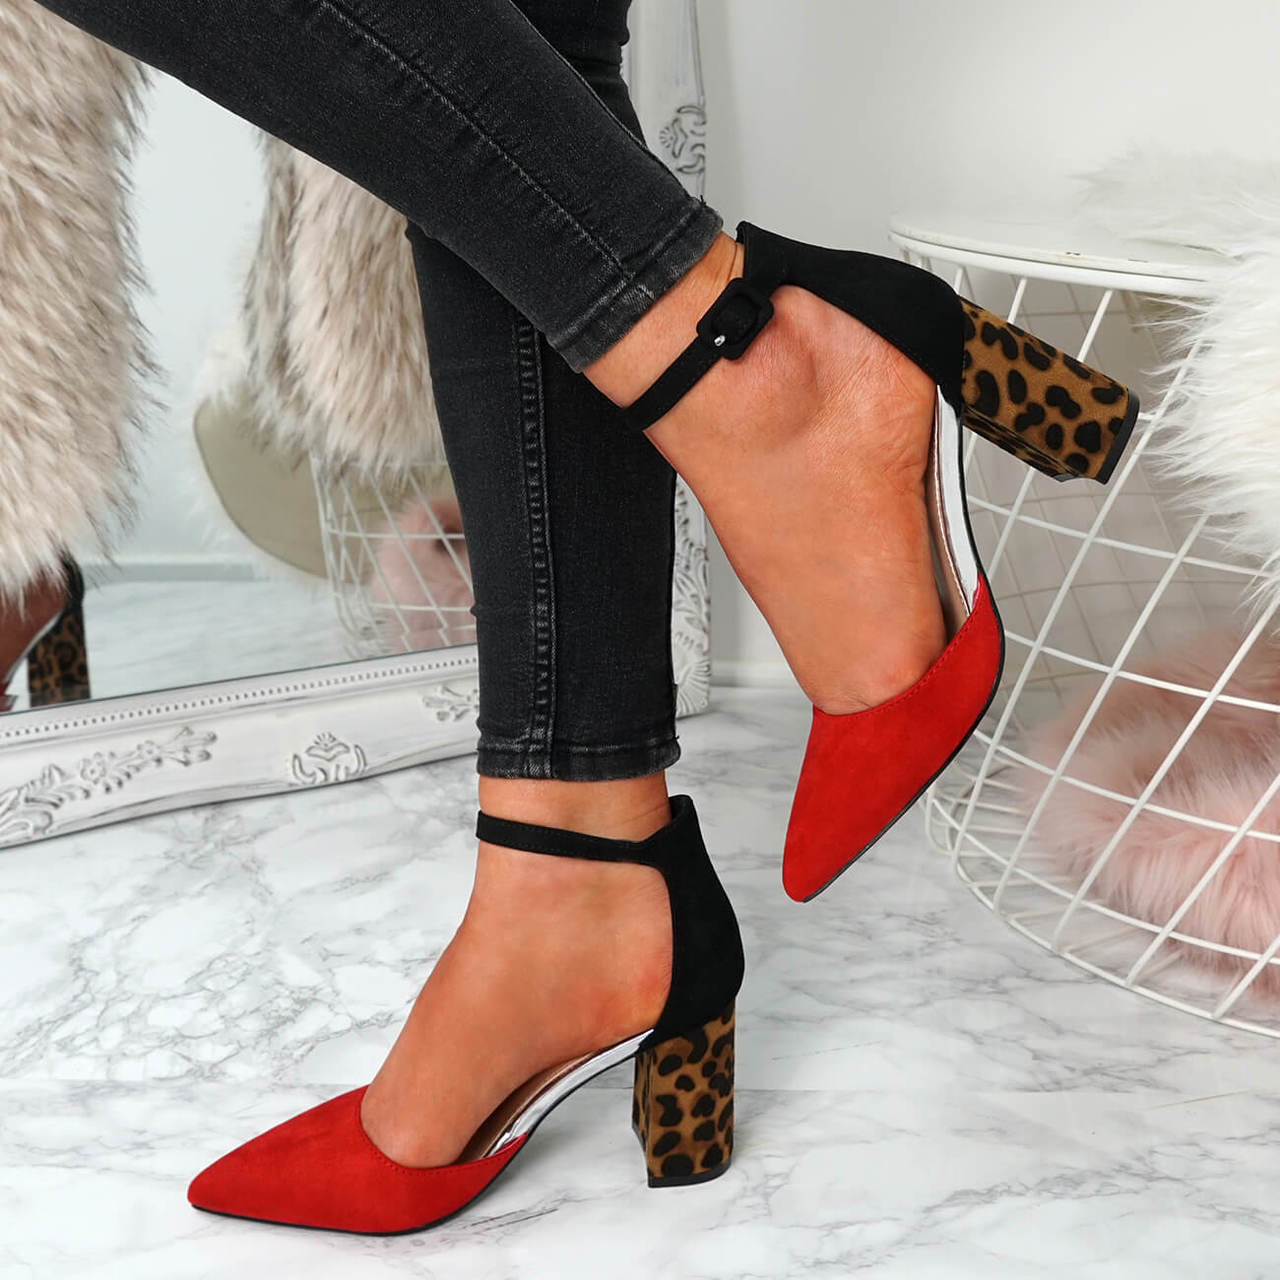 UK Ladies Womens High Block Heel Red Leapard Toe Shoes Size 3 4 5 6 7 8